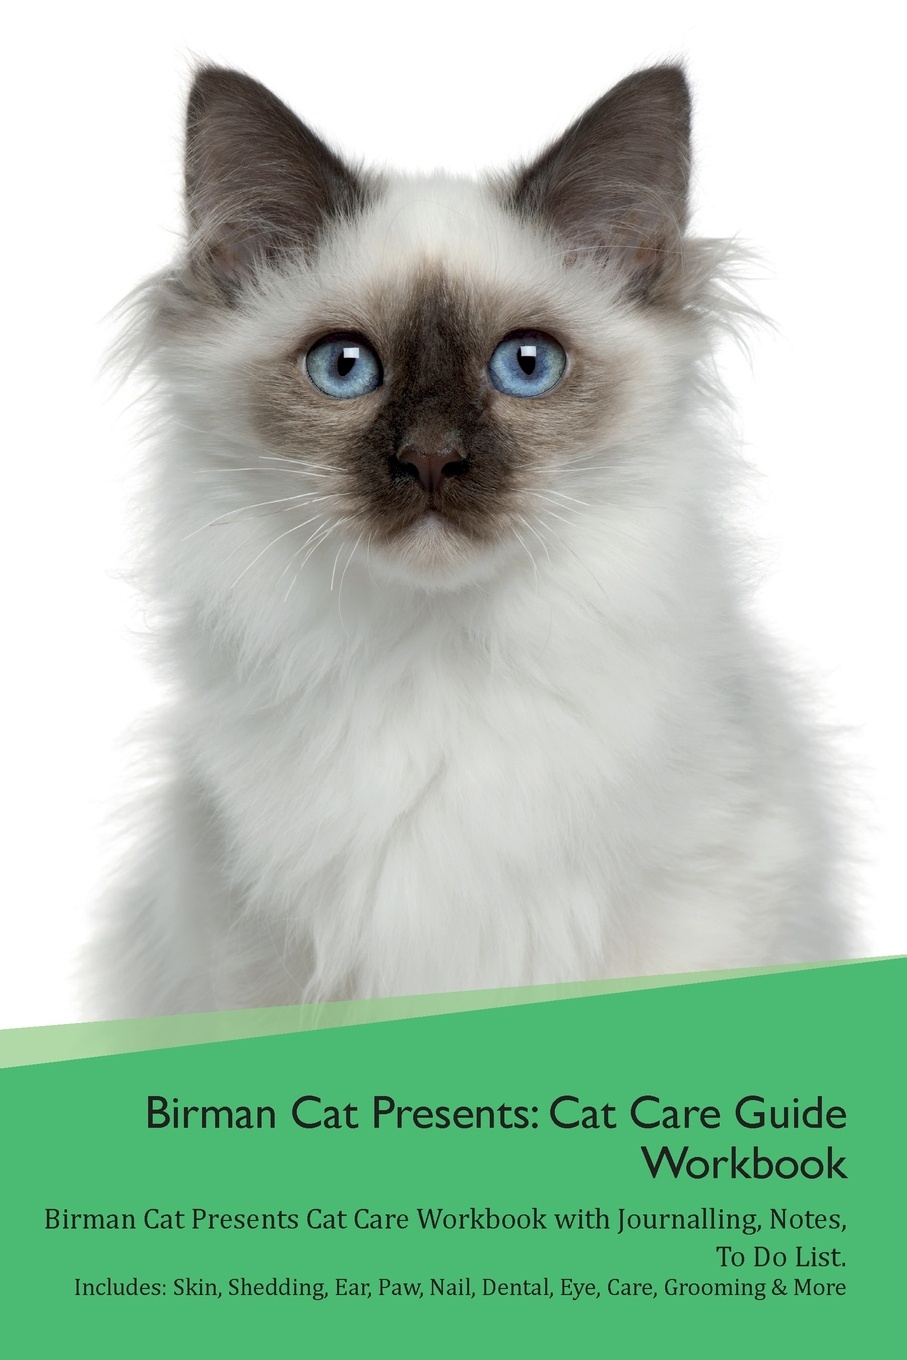 Productive Cat Birman Presents. Care Guide Workbook Presents with Journalling, Notes, To Do List. Includes: Skin, Shedding, Ear, Paw, Nail, Dental, Eye, Care, Grooming & More